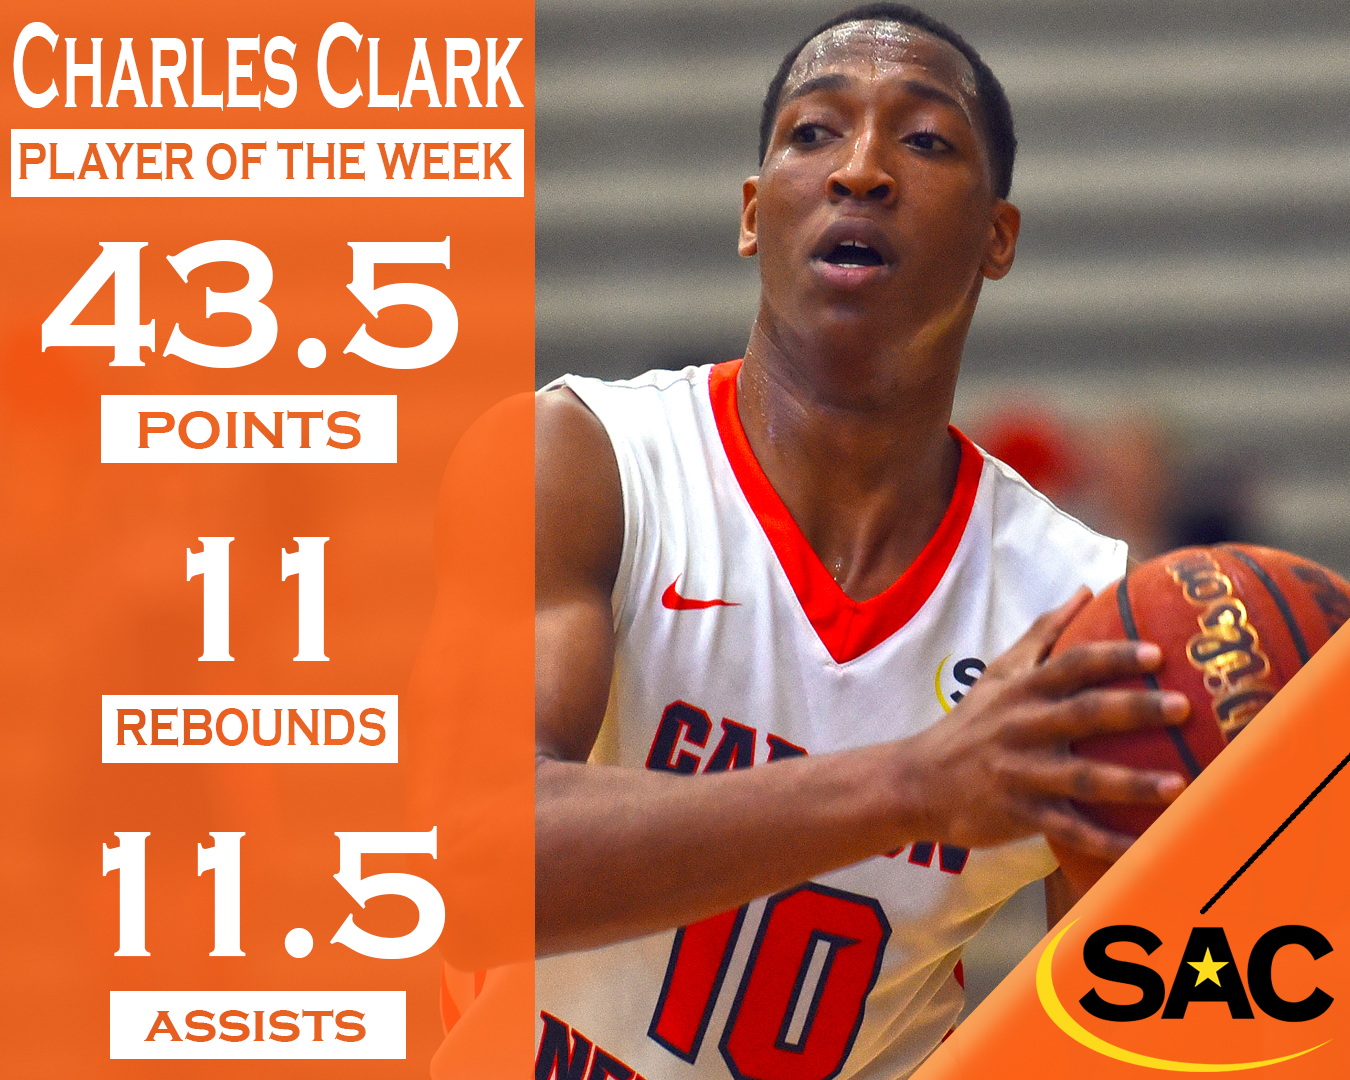 Clark's prodigious week garners AstroTurf South  Atlantic Conference Player of the Week honors